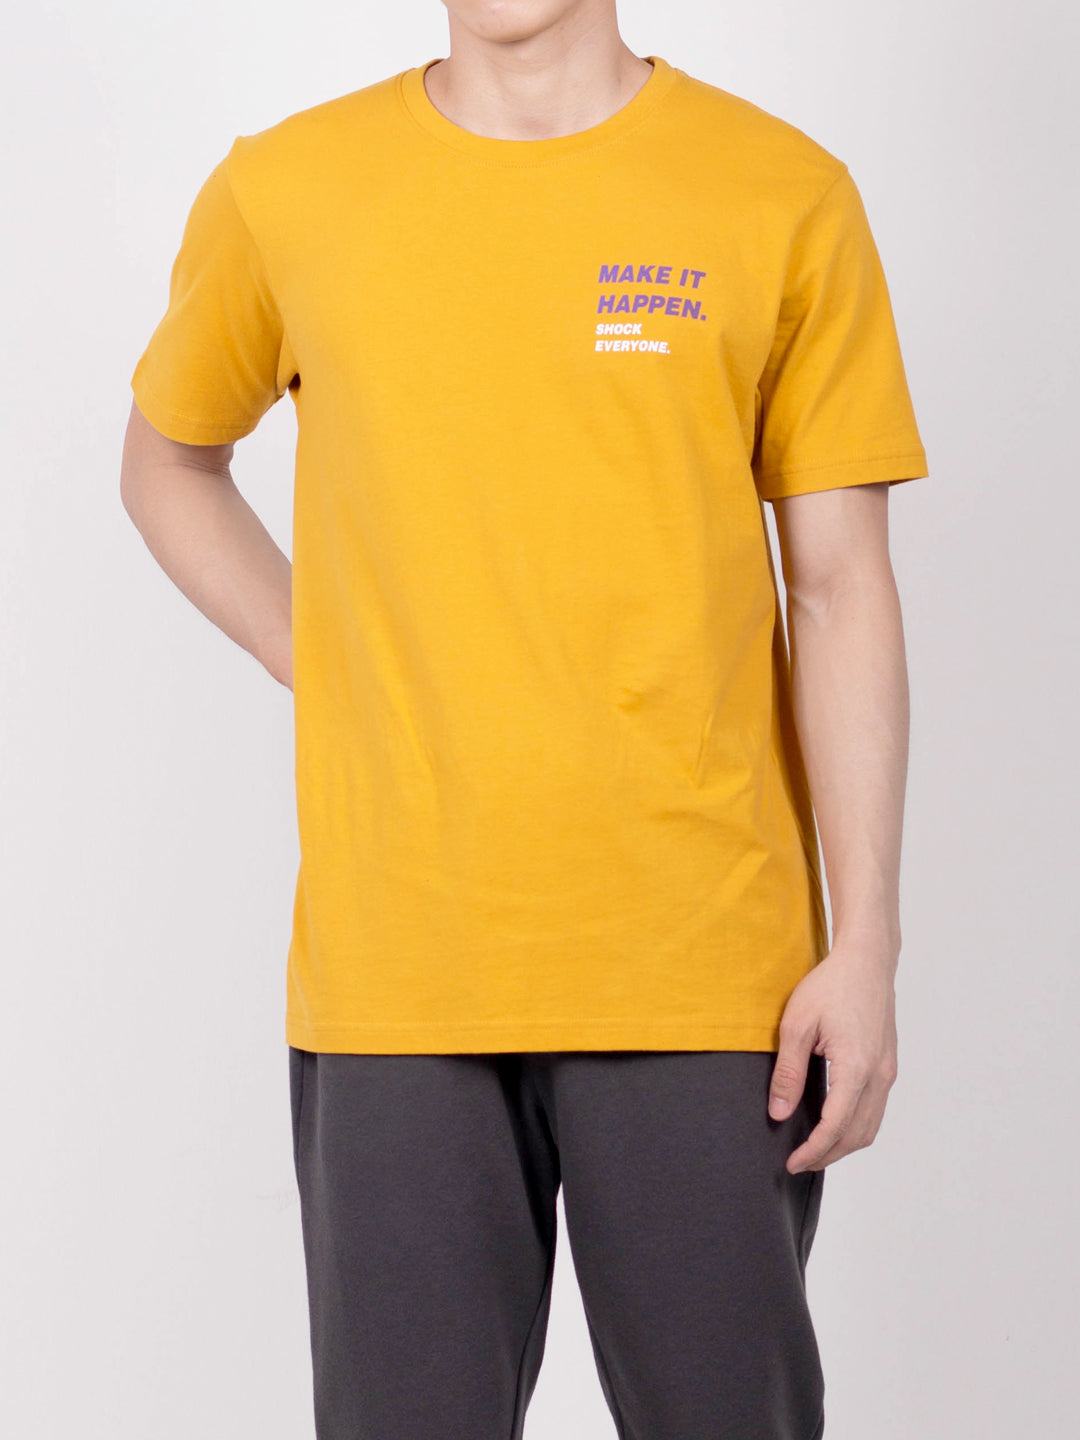 Men Slogan Short Sleeve T-Shirt - Yellow - RFH20H2692